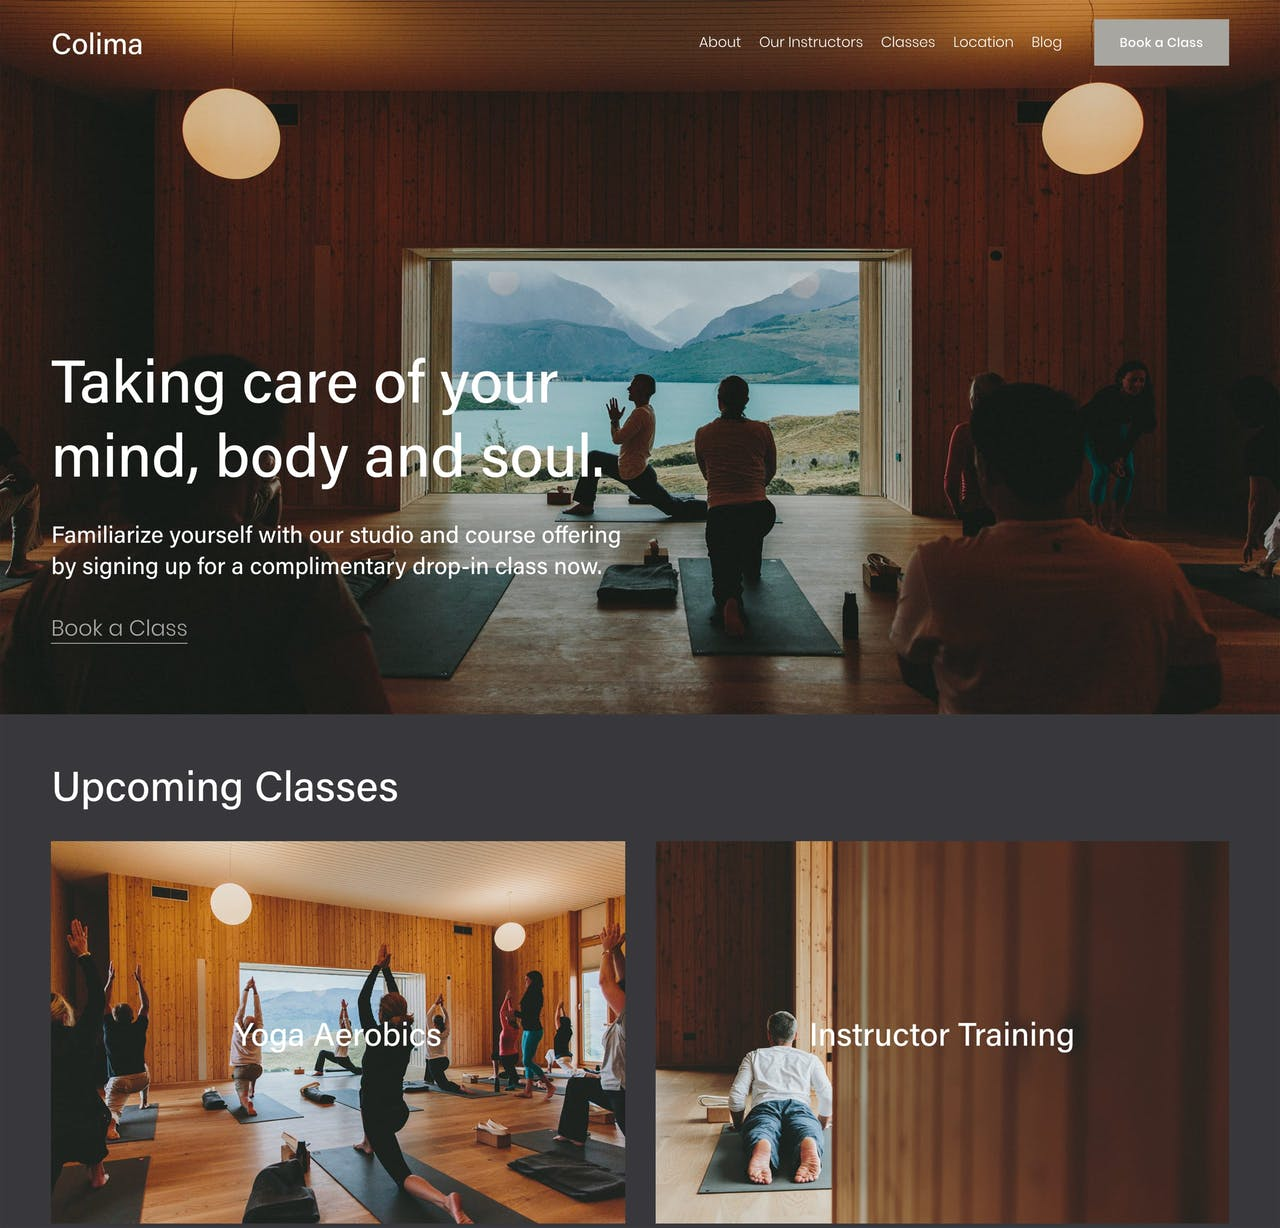 Squarespace Colima Template - Home Preview Screenshot